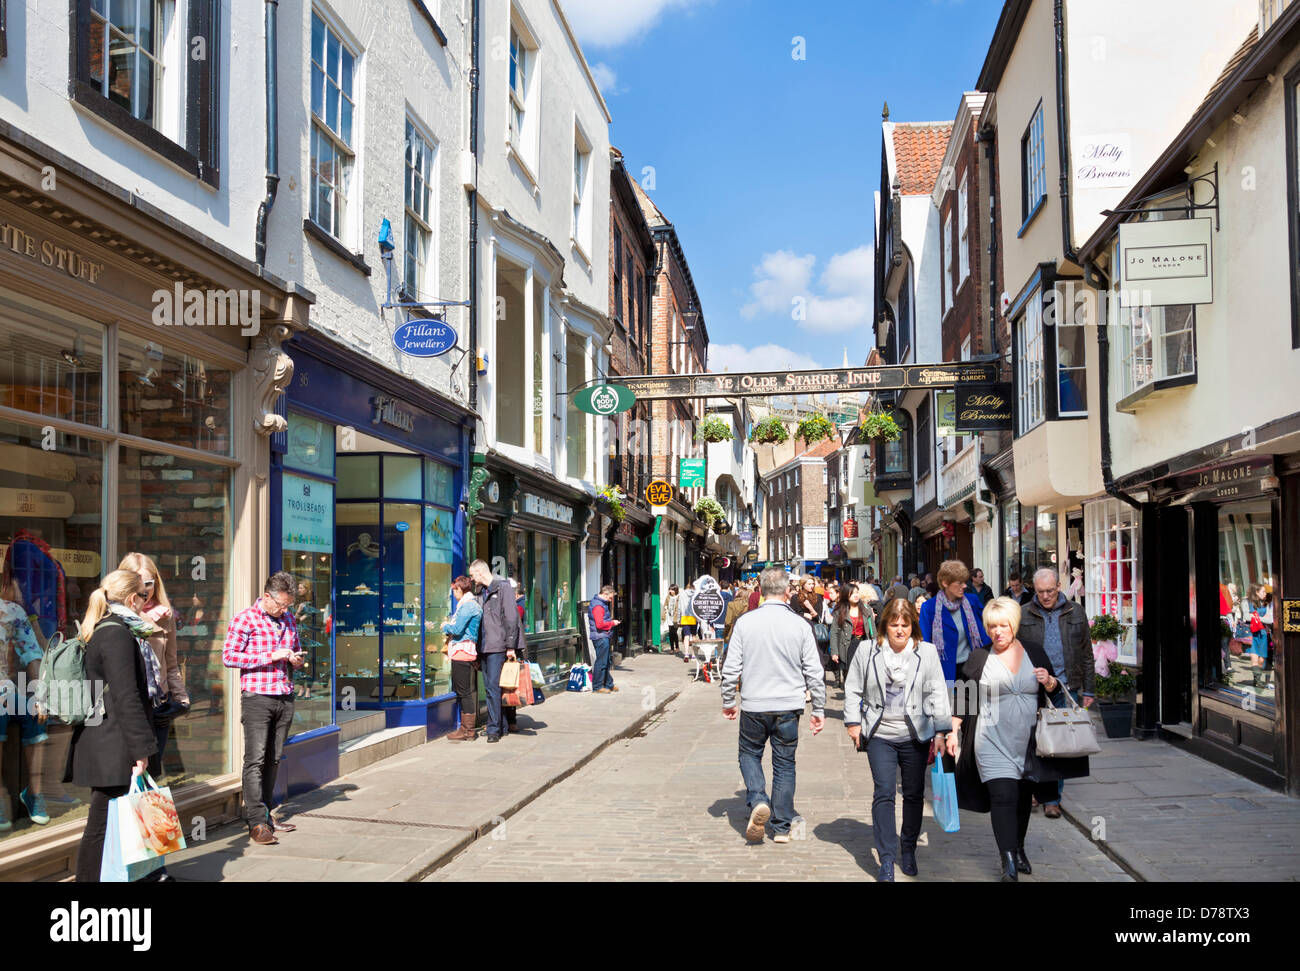 Stonegate in the city of York is a busy shopping street, York city centre North Yorkshire England UK GB Europe Stock Photo